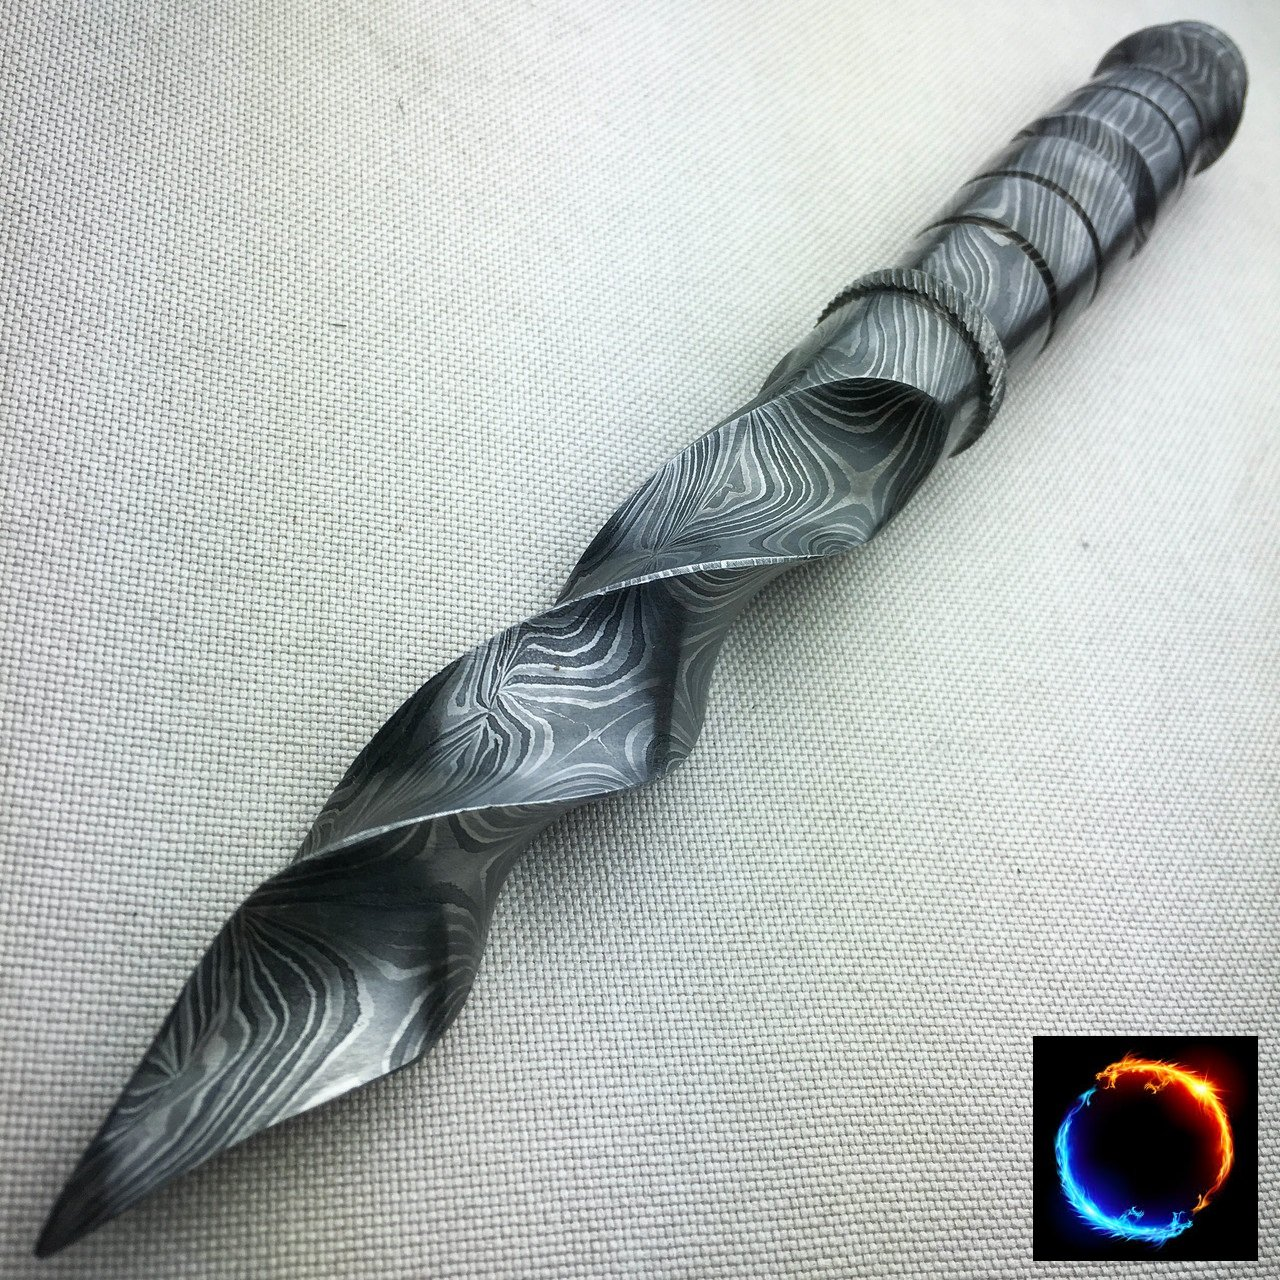 10.5'' Damascus Fixed Blade Knife Handmade Tri Dagger Hand Forged Kris Blade + Sheath (Limited Edition)